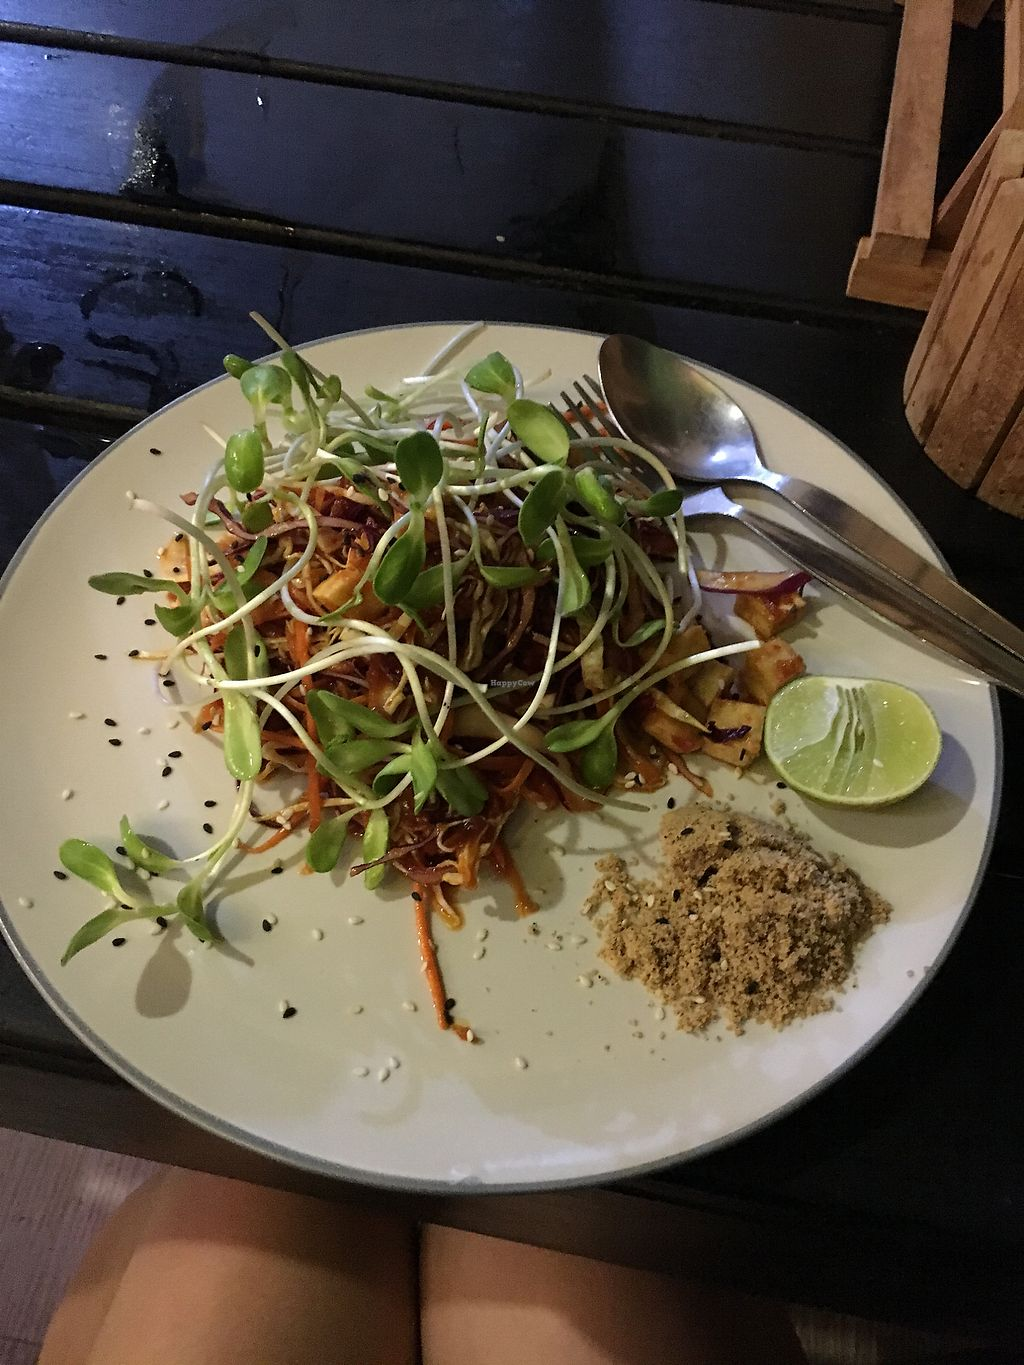 """Photo of Happy Veggie  by <a href=""""/members/profile/LauraDhavani"""">LauraDhavani</a> <br/>Raw Pad Thai ?? <br/> April 12, 2018  - <a href='/contact/abuse/image/83999/384606'>Report</a>"""